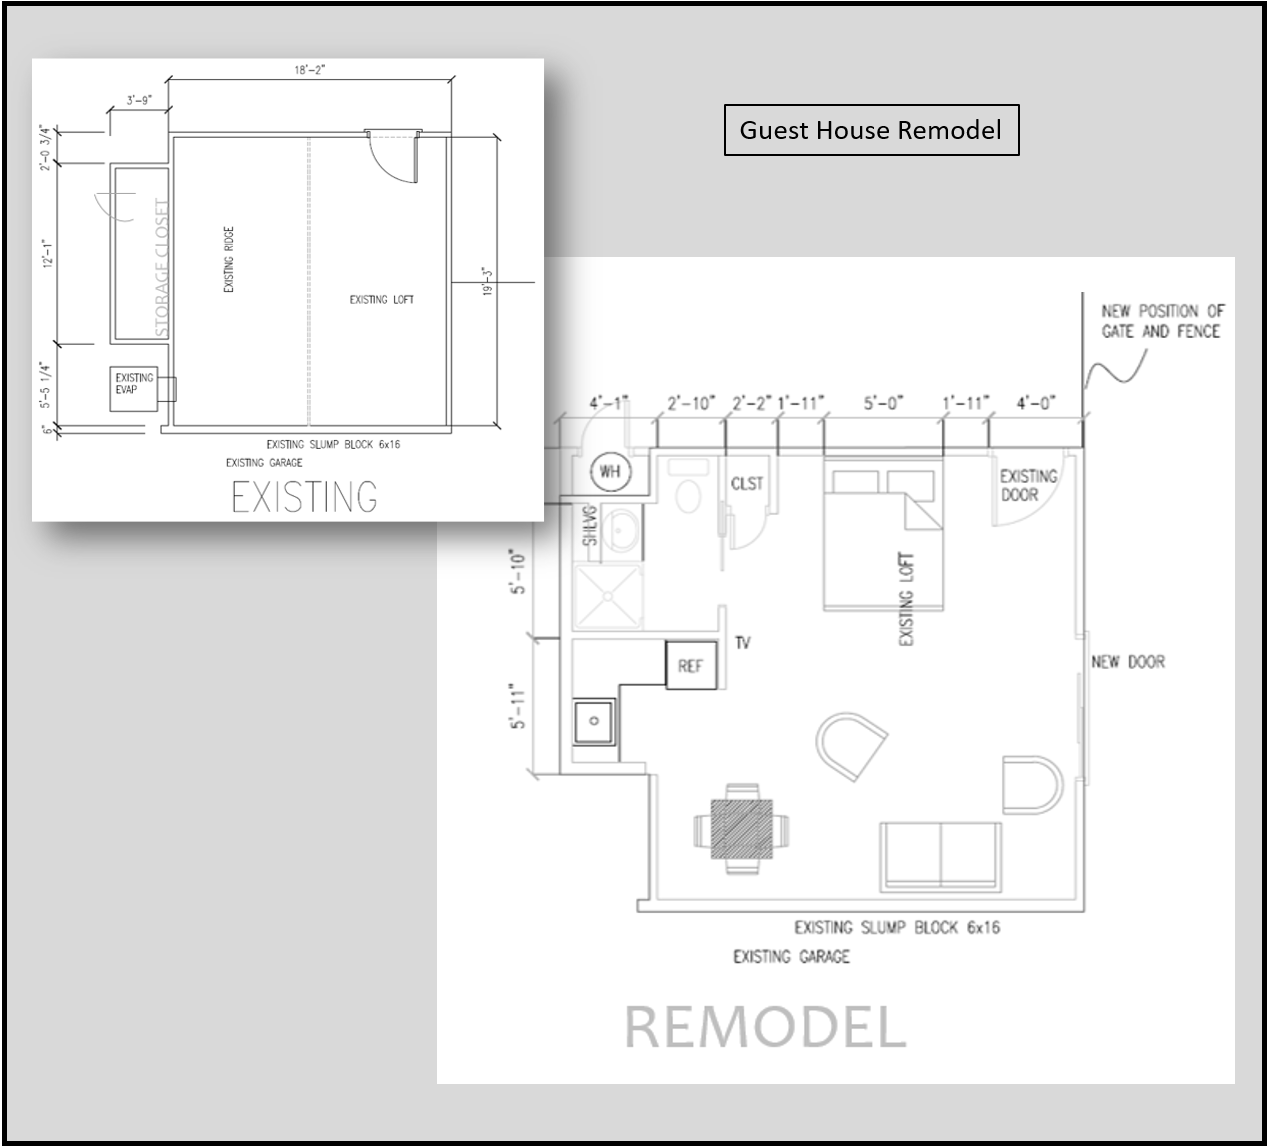 guest house remodel drafting construction plans drawing the designers eye shawn barghout